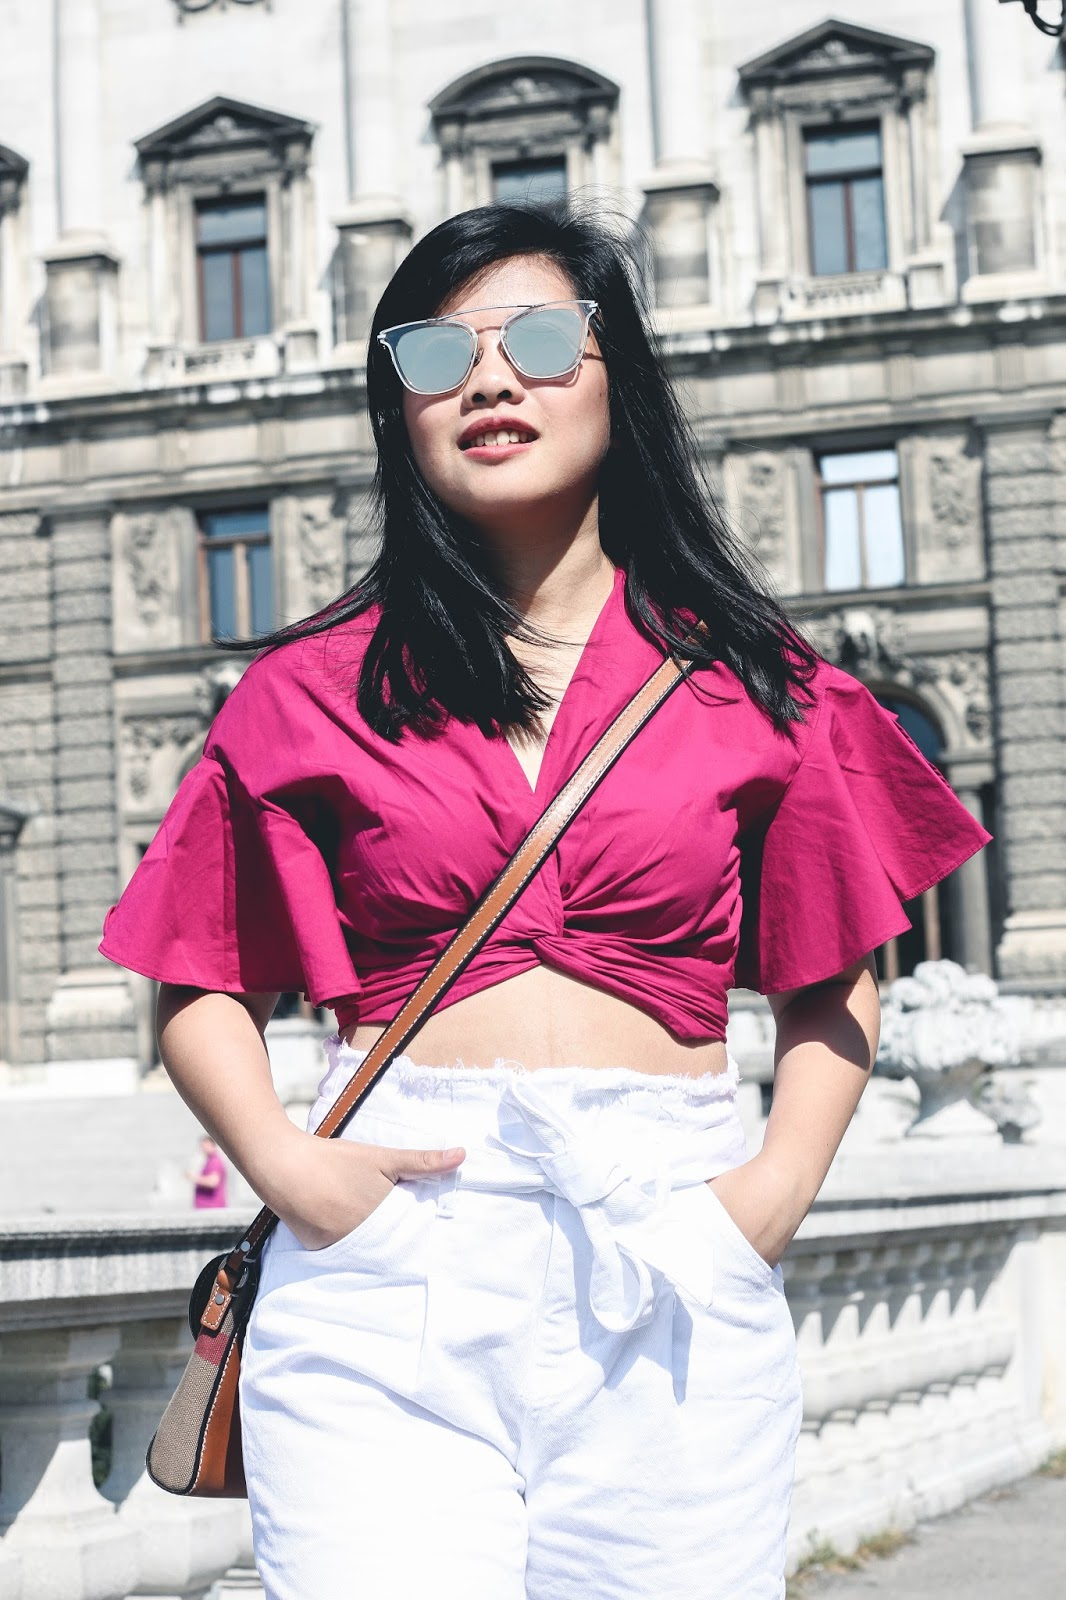 singapore blogger stylexstyle lookbook street style photography photograph ootd wiwt ruffled top fuchsia white pants outfit summer holiday europe vienna